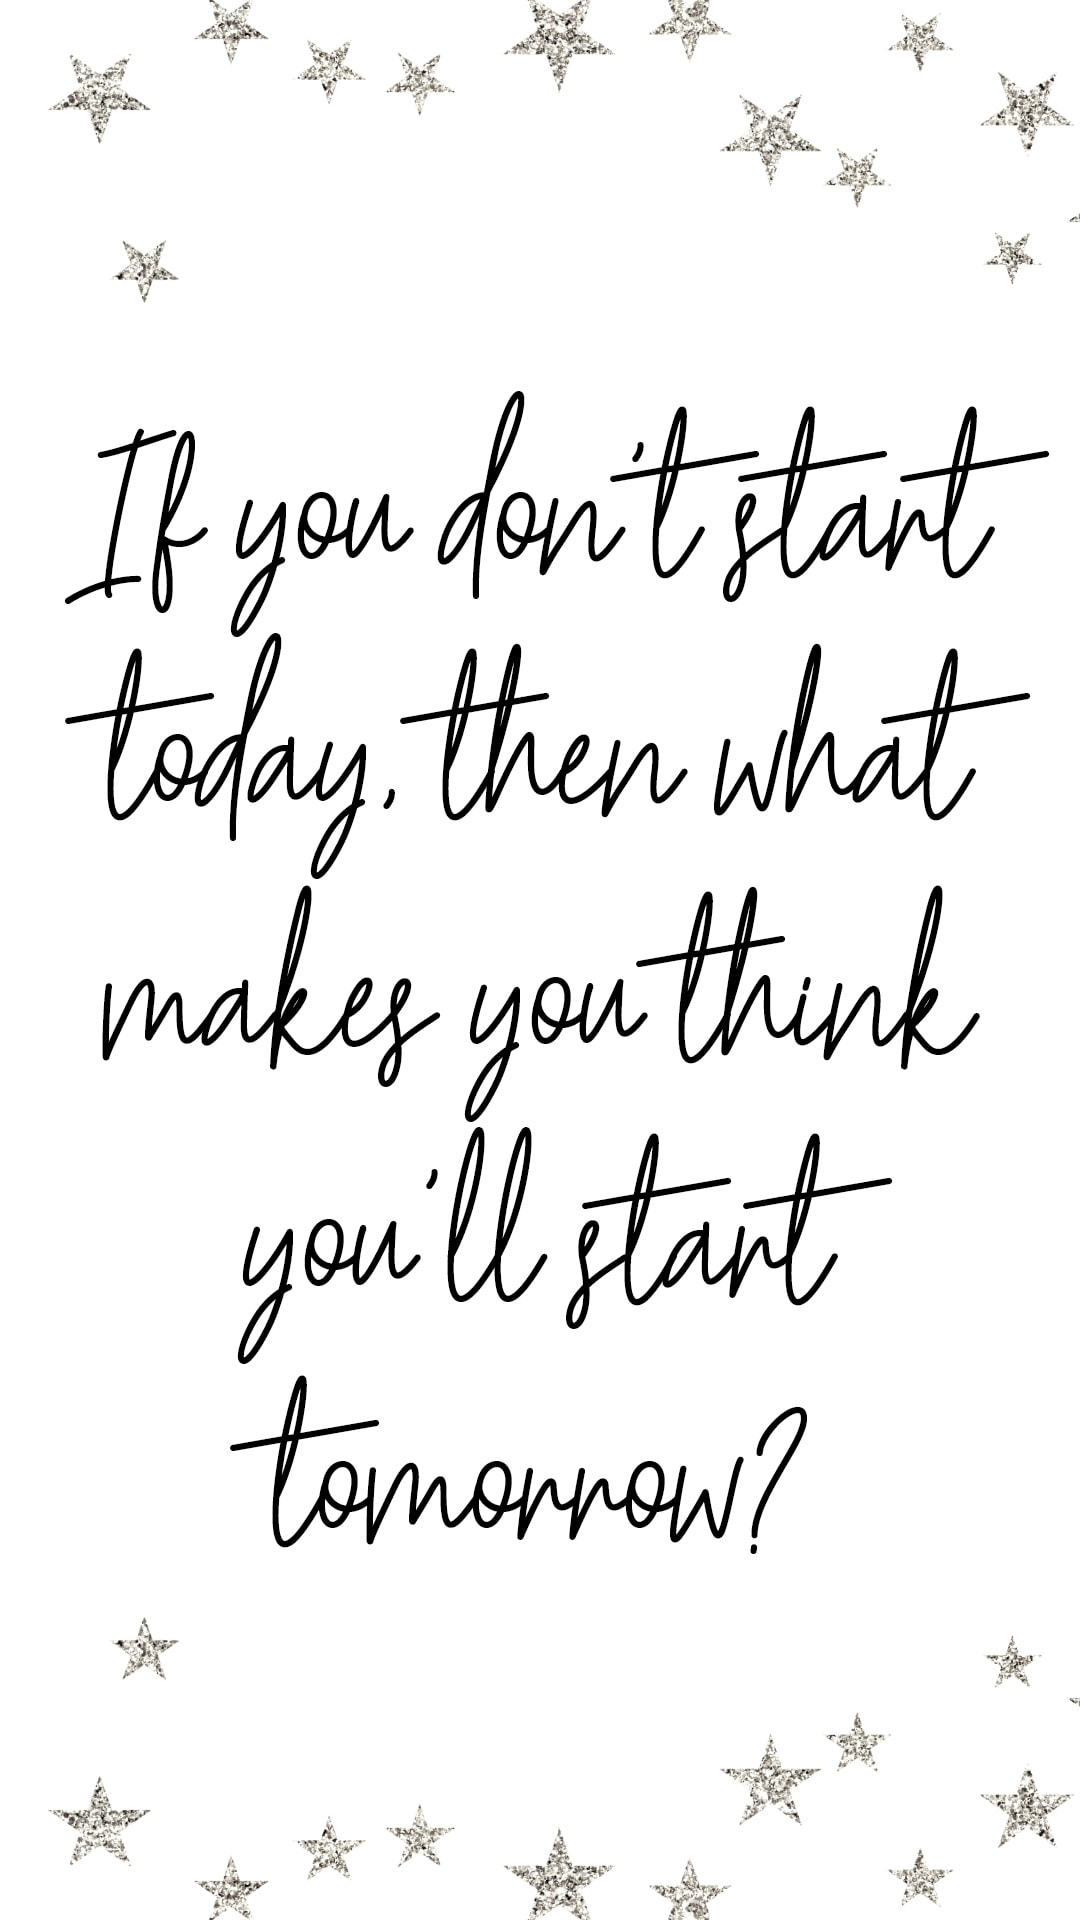 phone wallpaper, phone background, quotes, free phone wallpapers, free iPhone wallpaper, free phone backgrounds, inspirational quotes, phone wallpapers